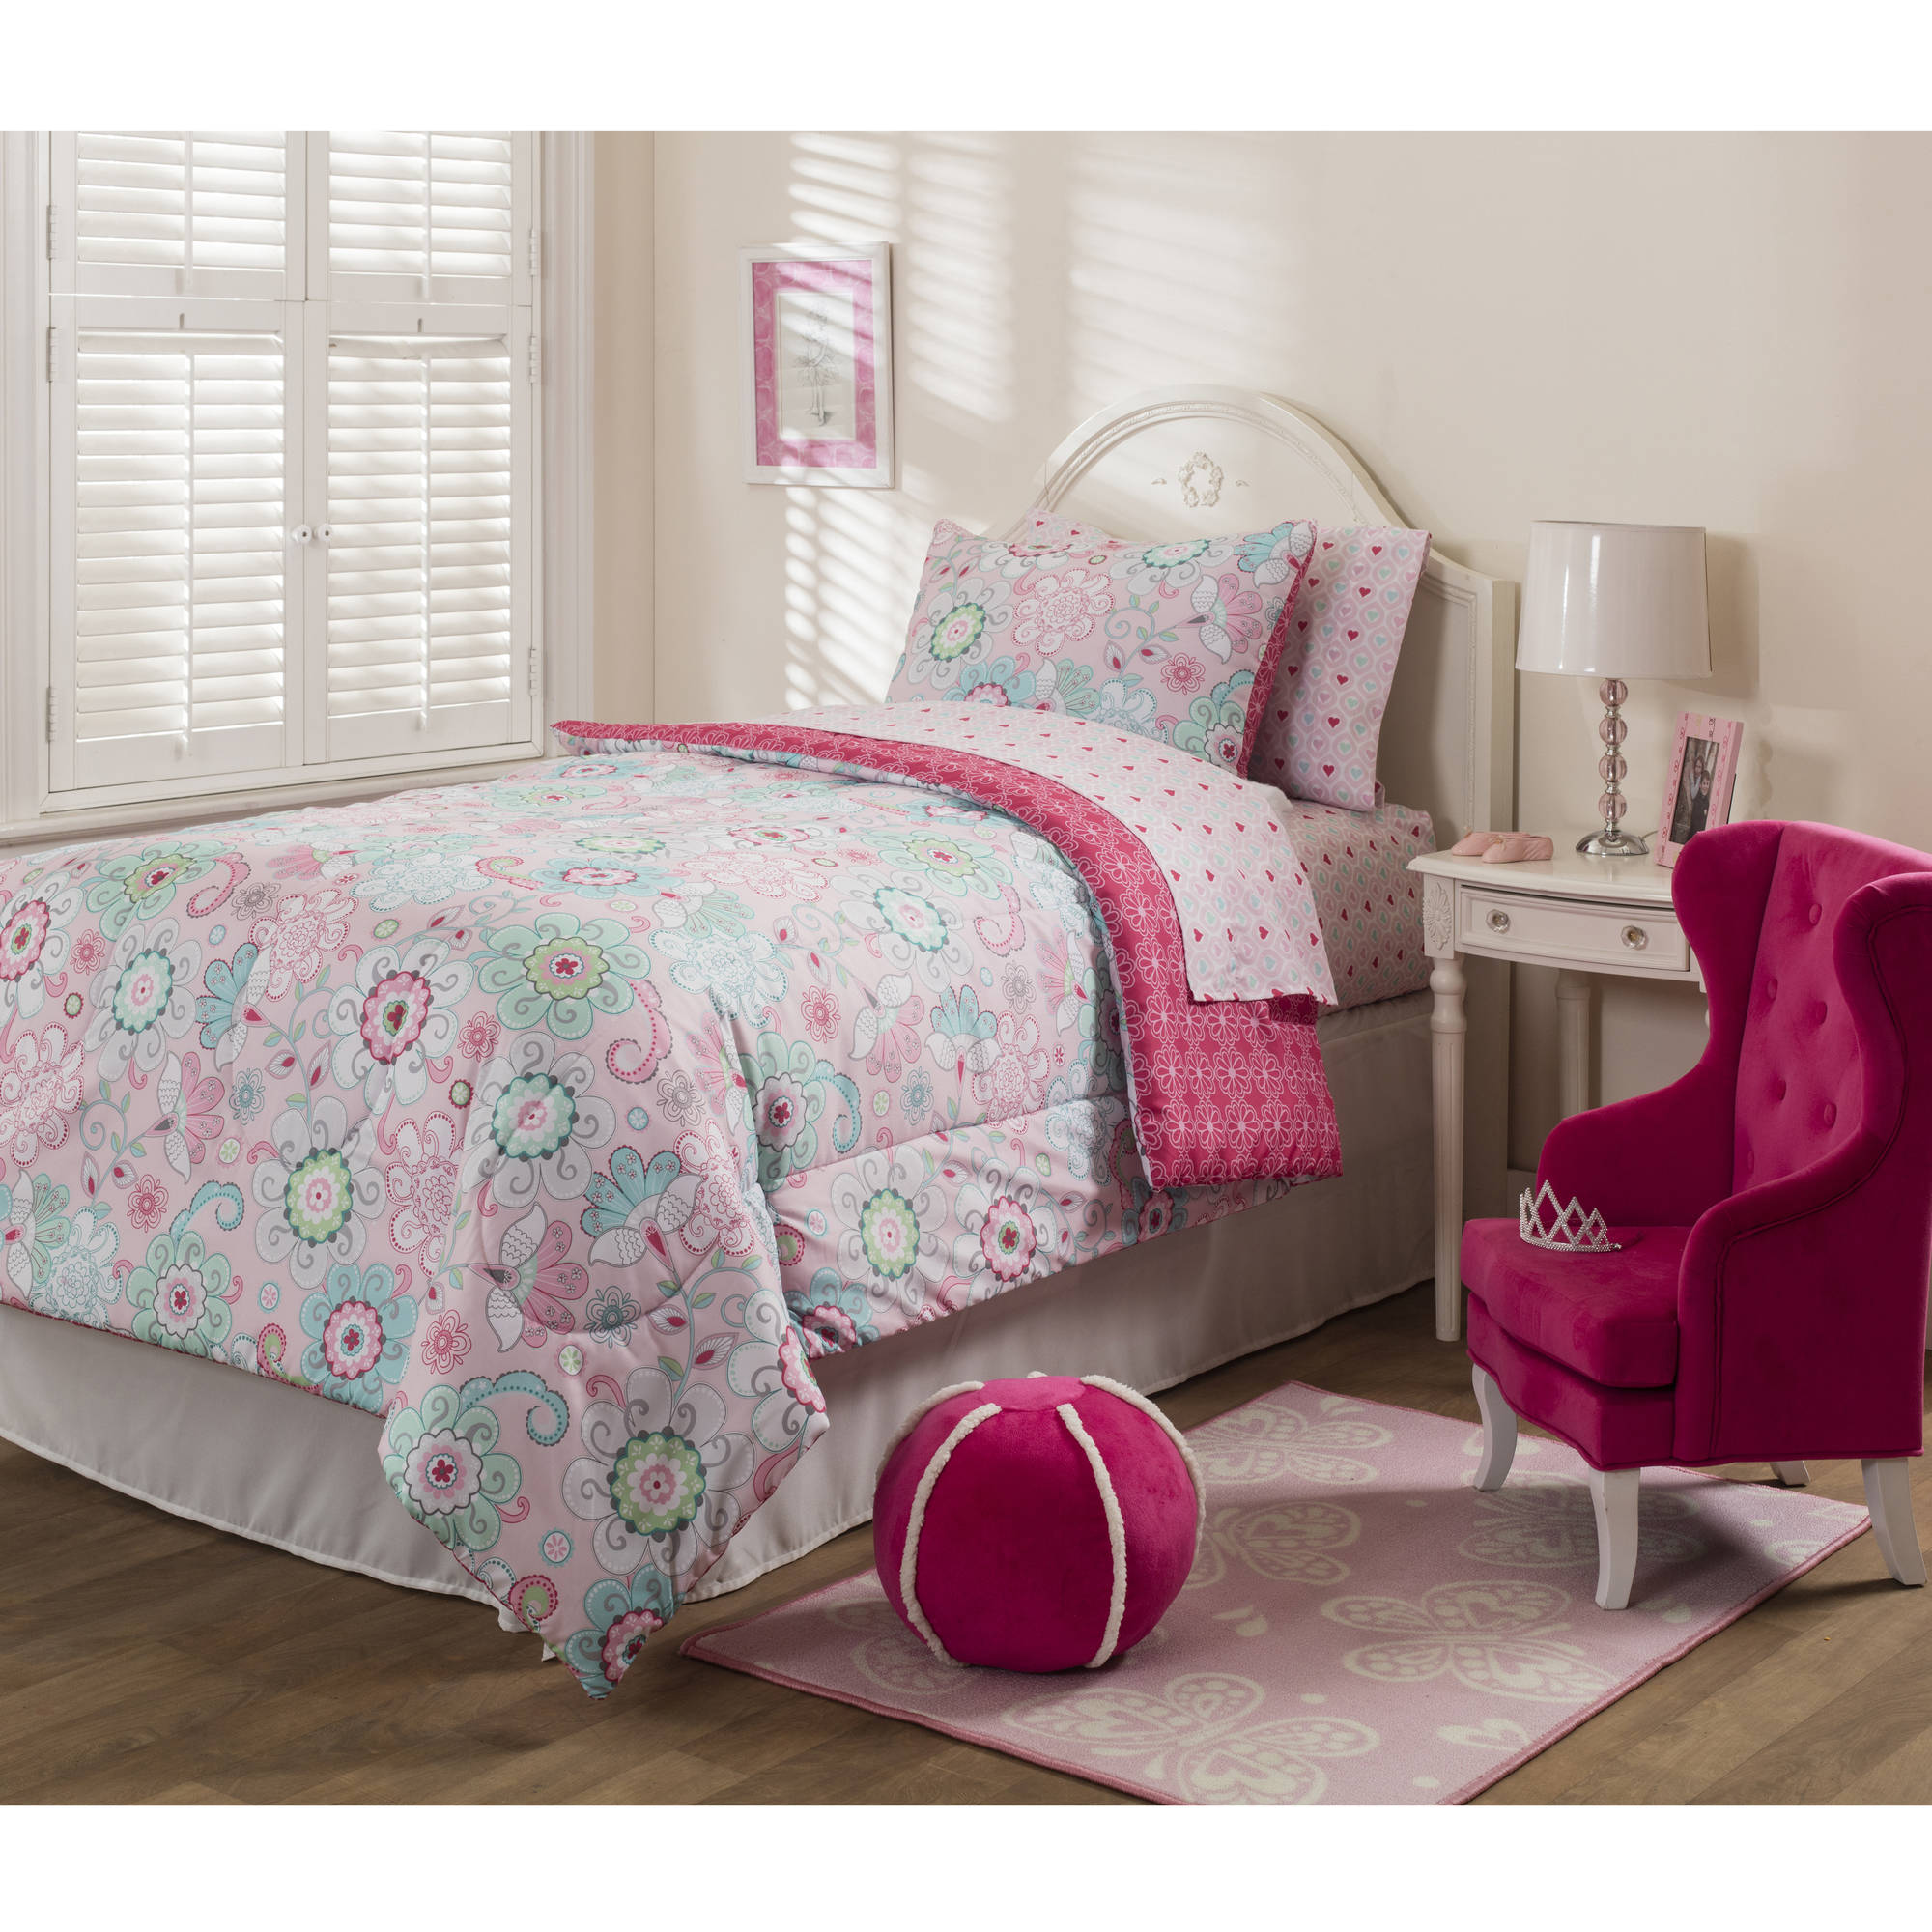 Mainstays Kids Sherbet Pink Bed In A Bag Bedding Set by Mainstays Kids